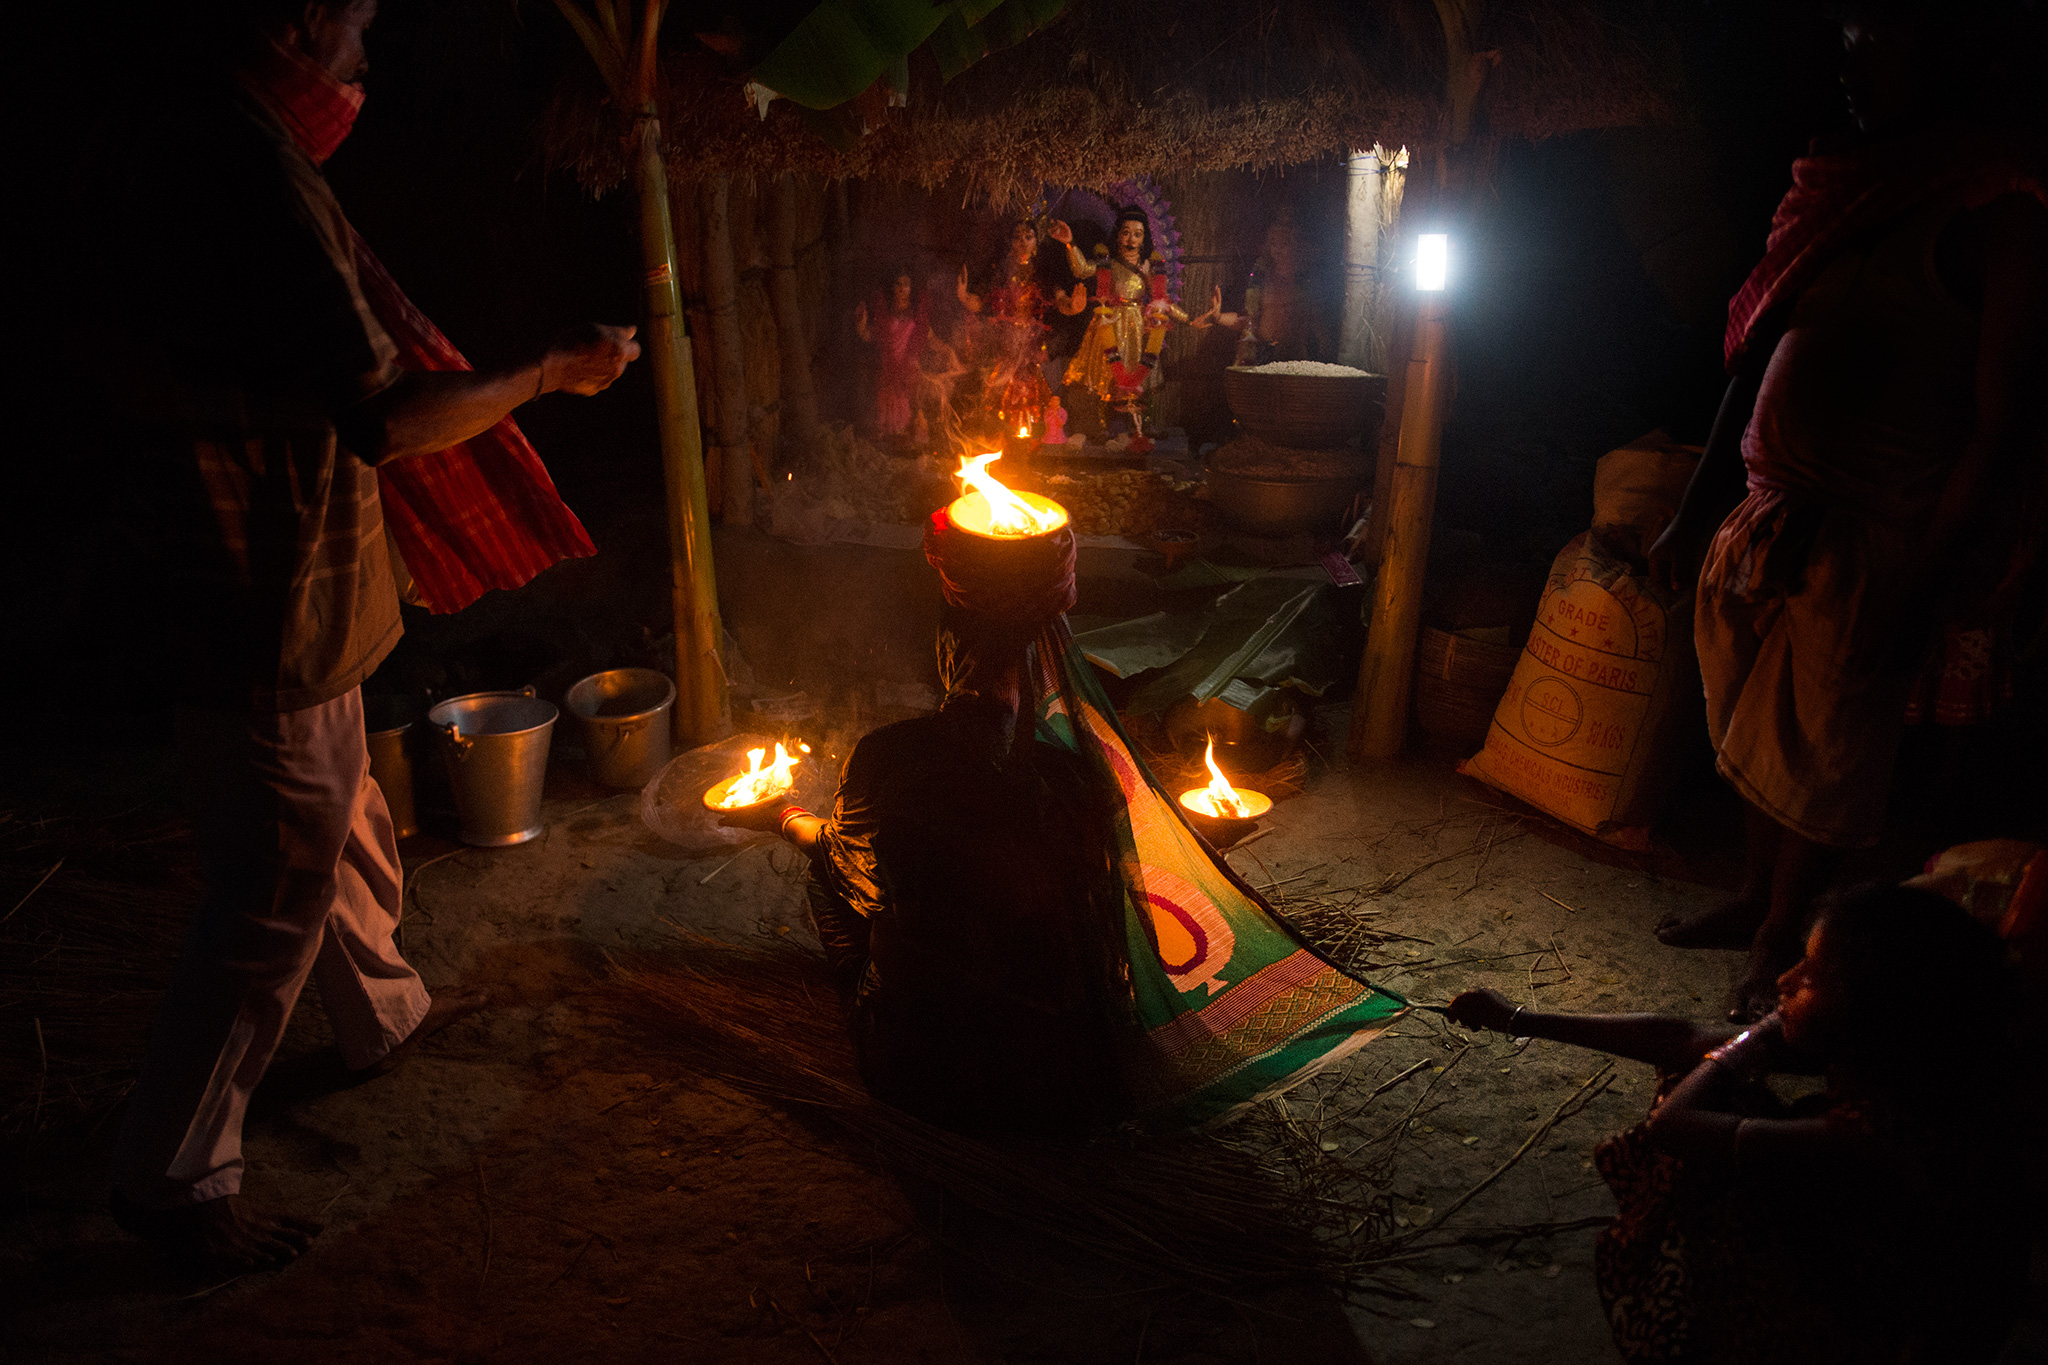 This is a deity -- Bonbibi -- that the fishers pray to before entering the forest. She protects them from the tigers. Kabita used to pray regularly to Bonbibi, but does not anymore.